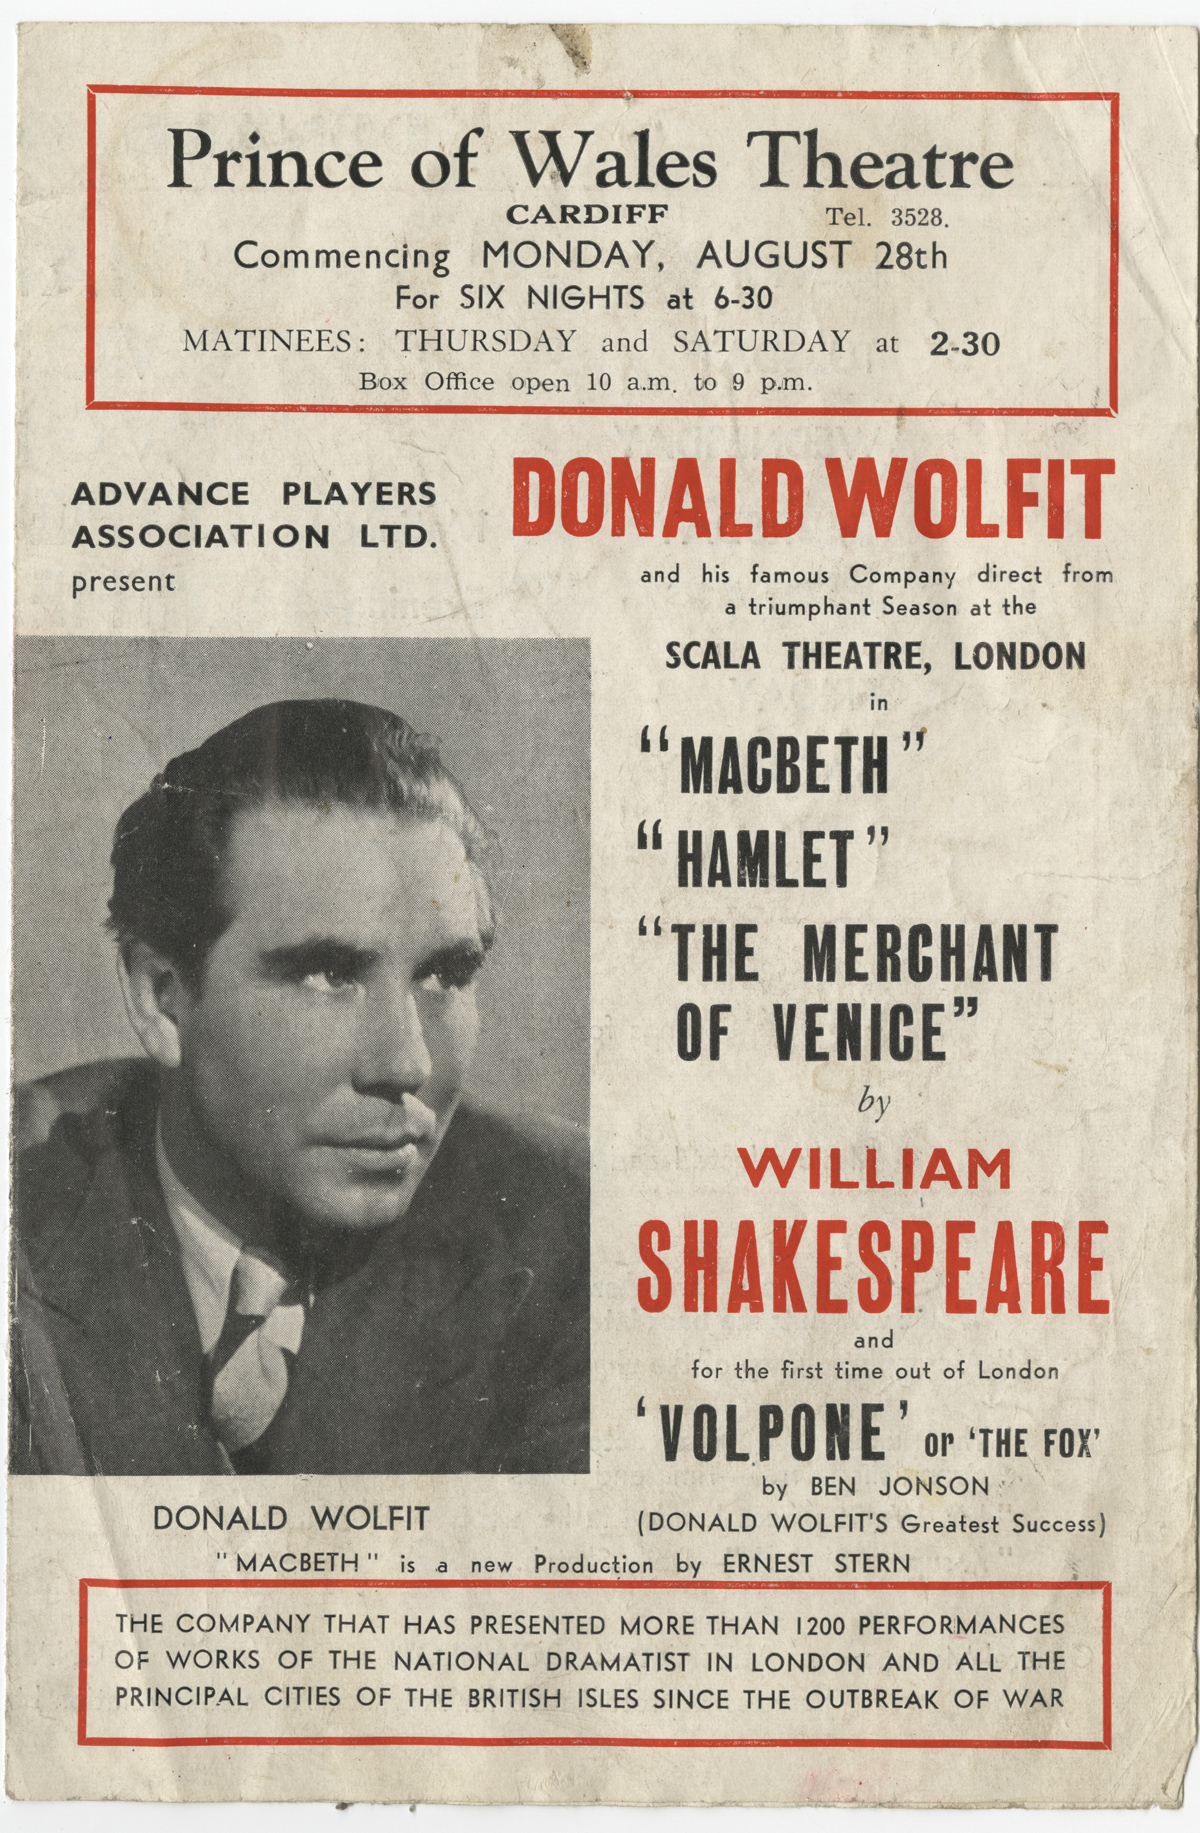 Fellow finds a kindred spirit in Shakespearean actor-manager Donald Wolfit